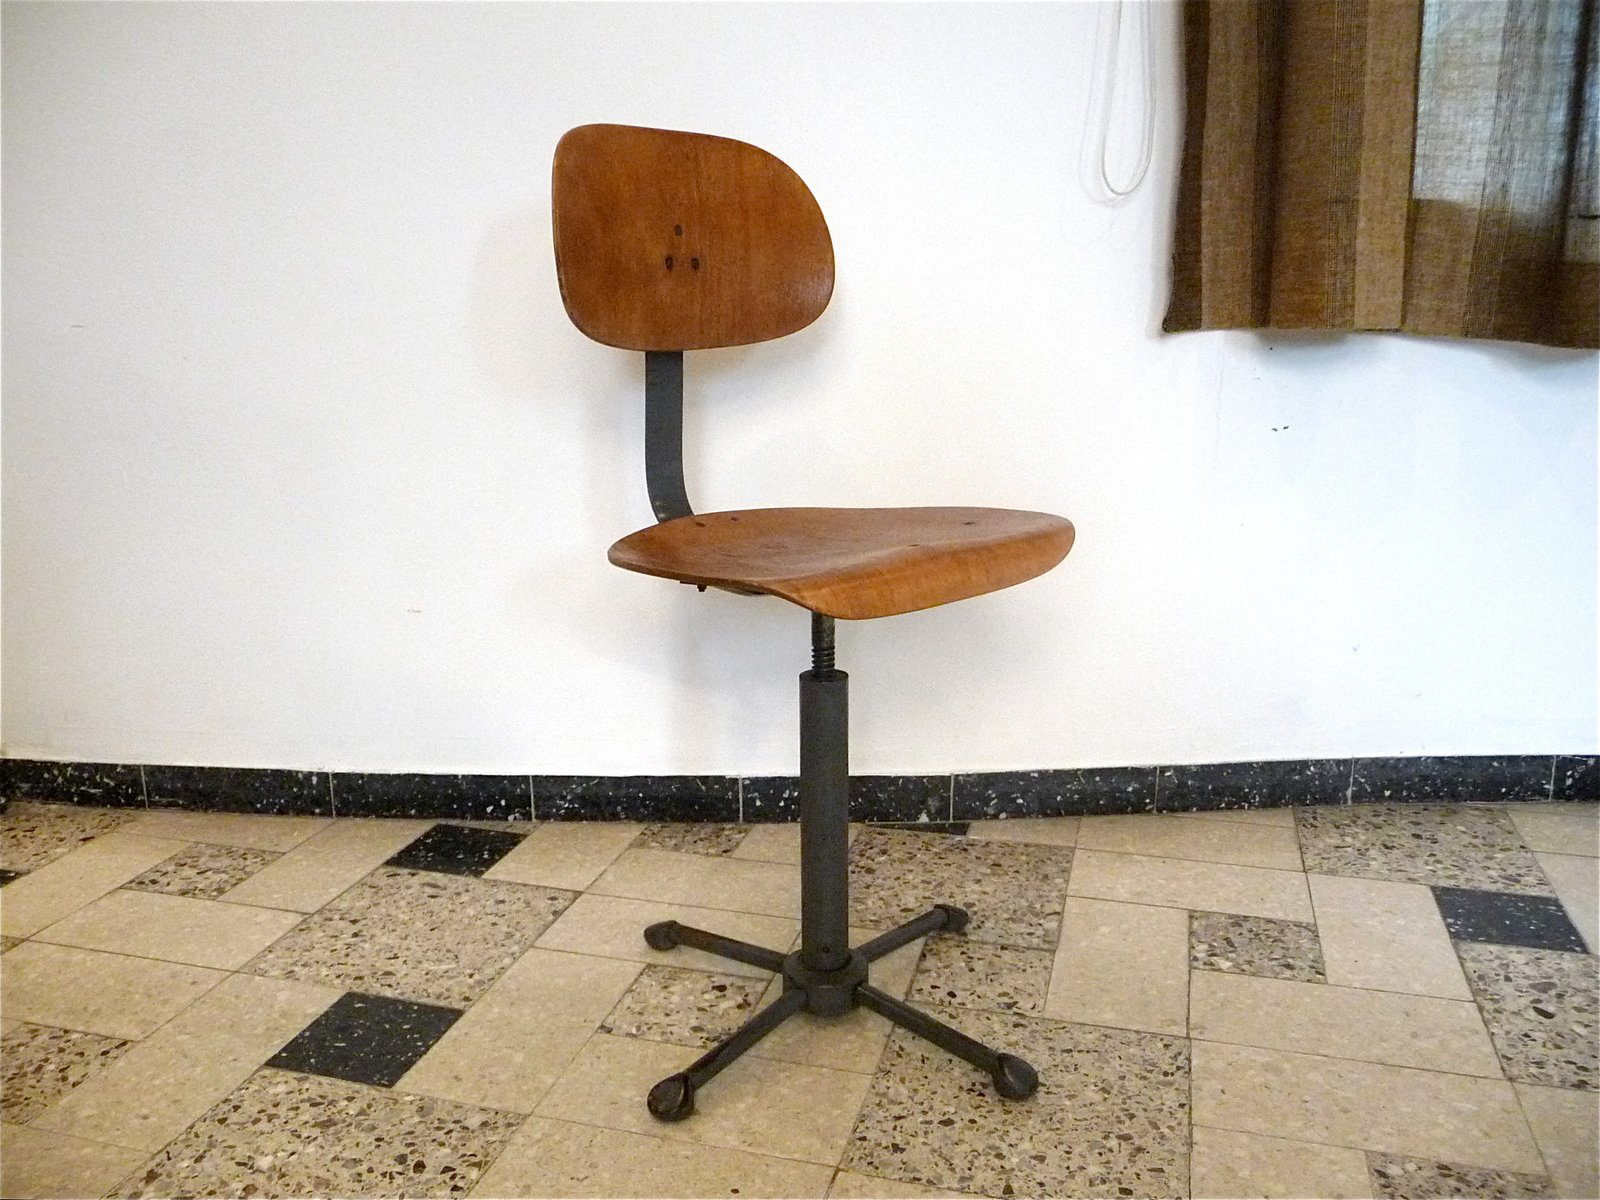 German Industrial Swivel Chair 1930s for sale at Pamono